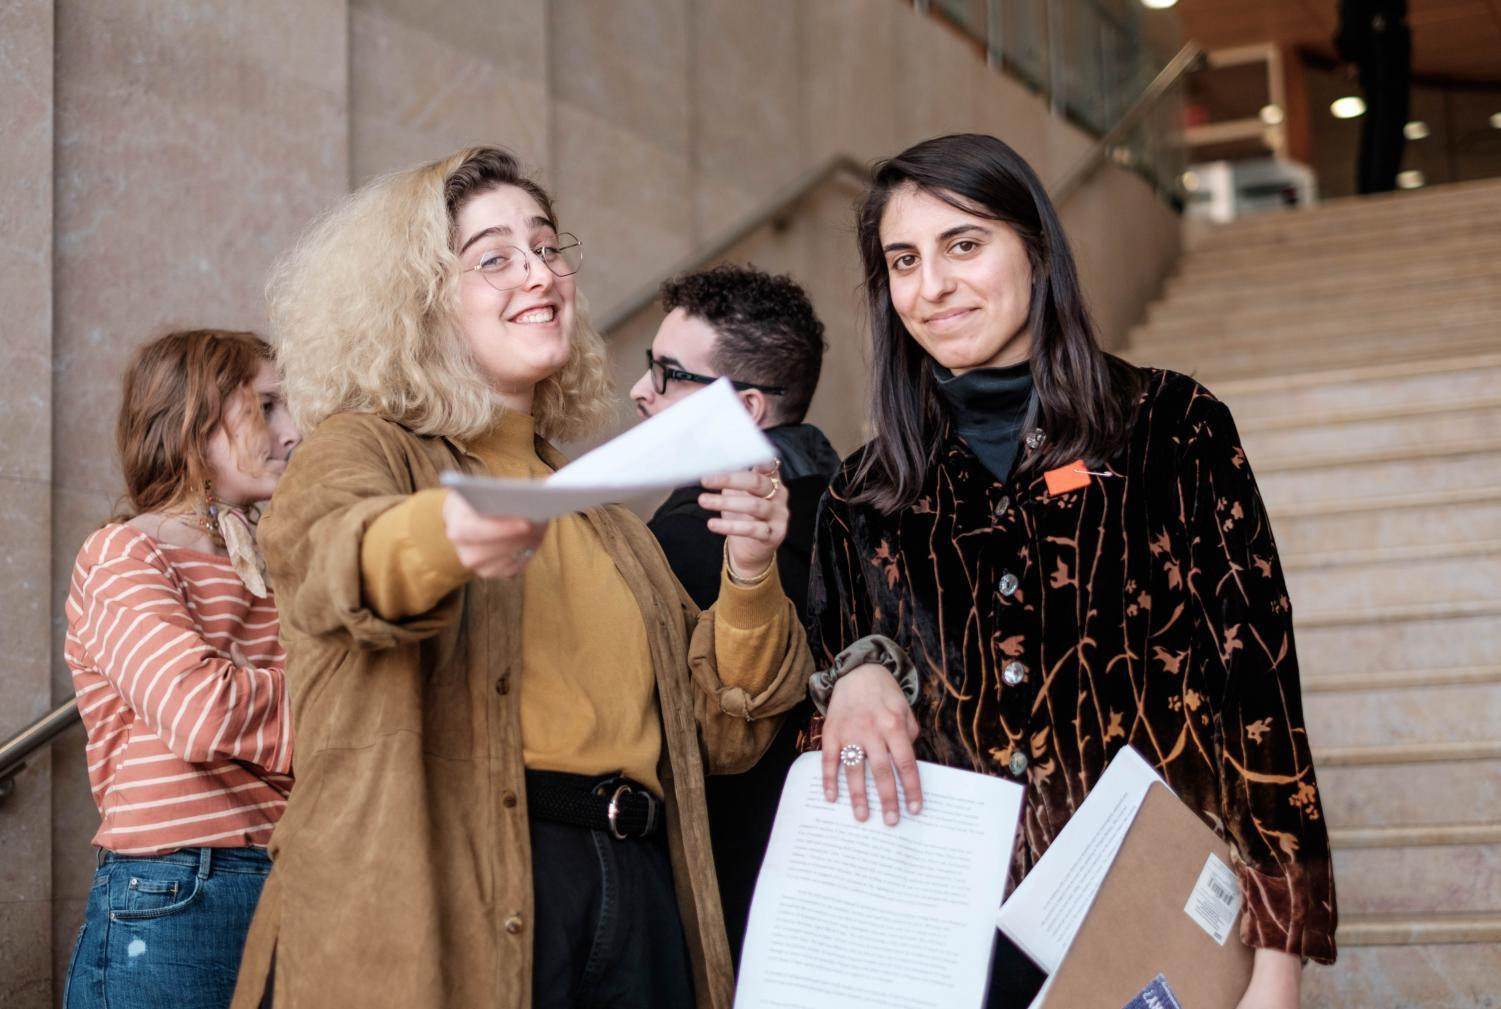 SLAM and NYU Divest protestors handing out informational flyers while occupying Kimmel on Apr. 9 2018.